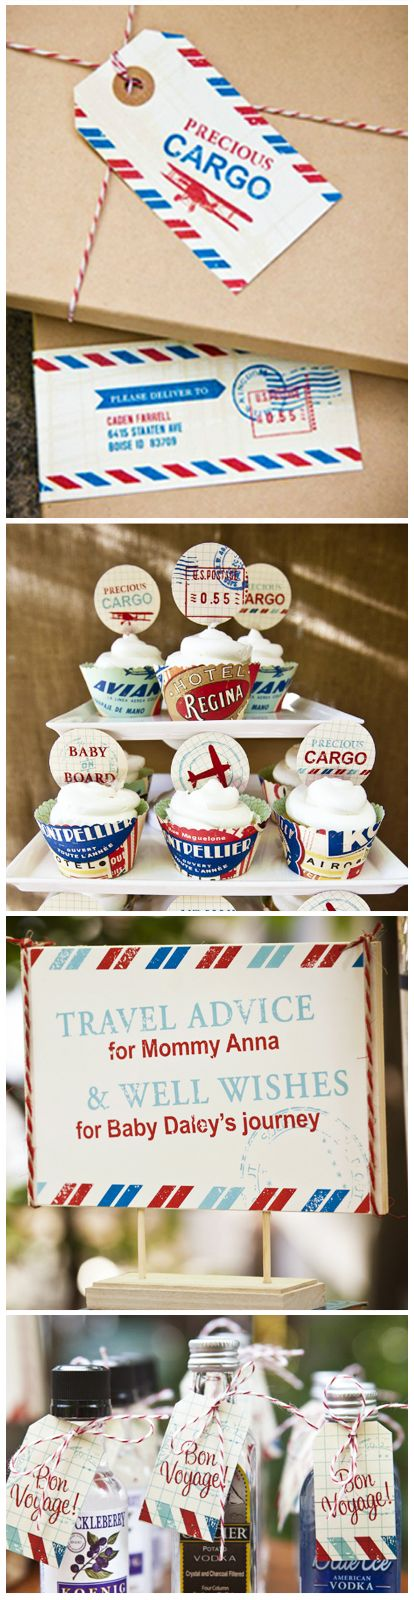 Precious Cargo Baby Shower Printables by I Heart to Party